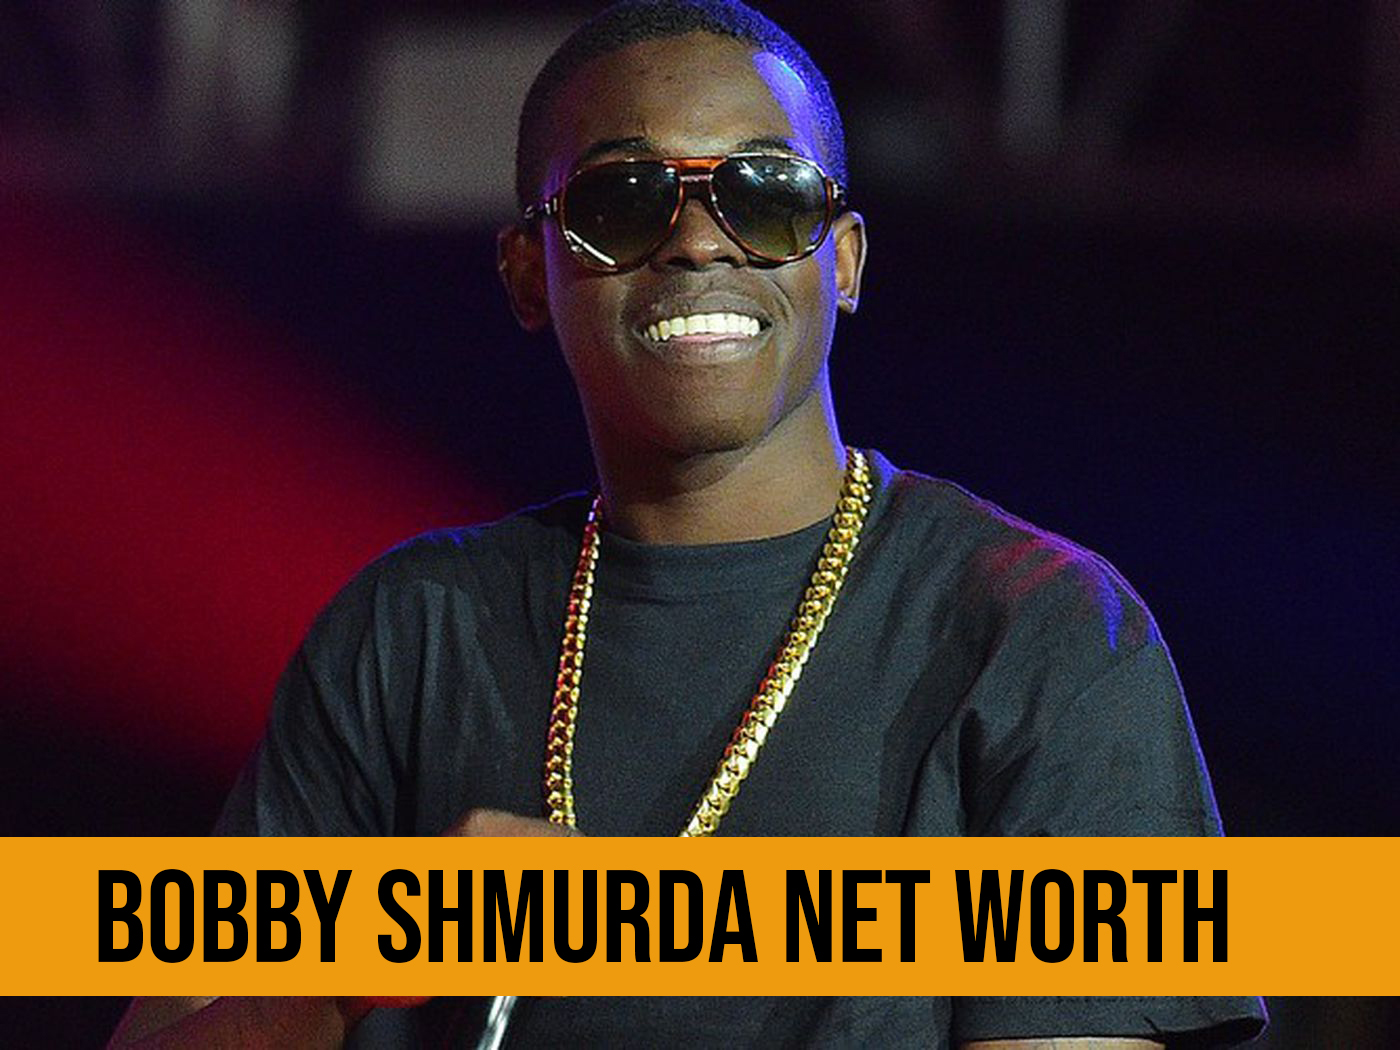 Bobby Shmurda Net Worth